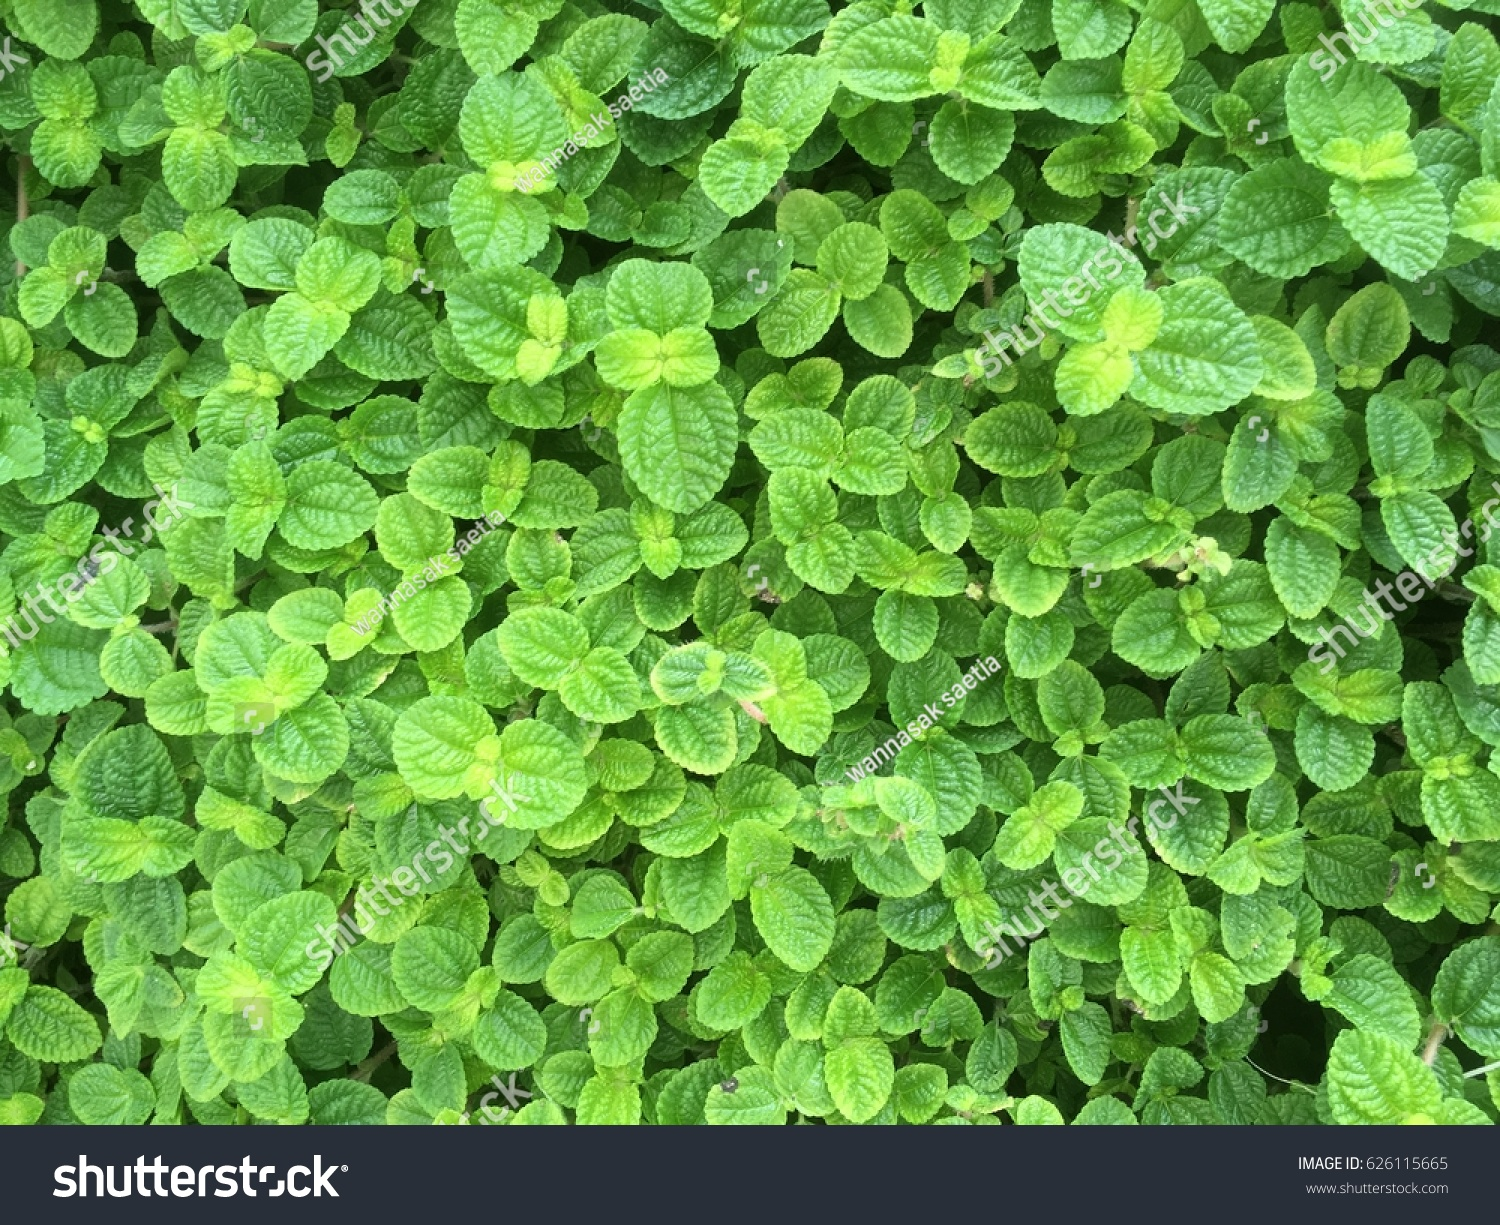 Mint Leaf Wallpaper Stock Photo 626115665